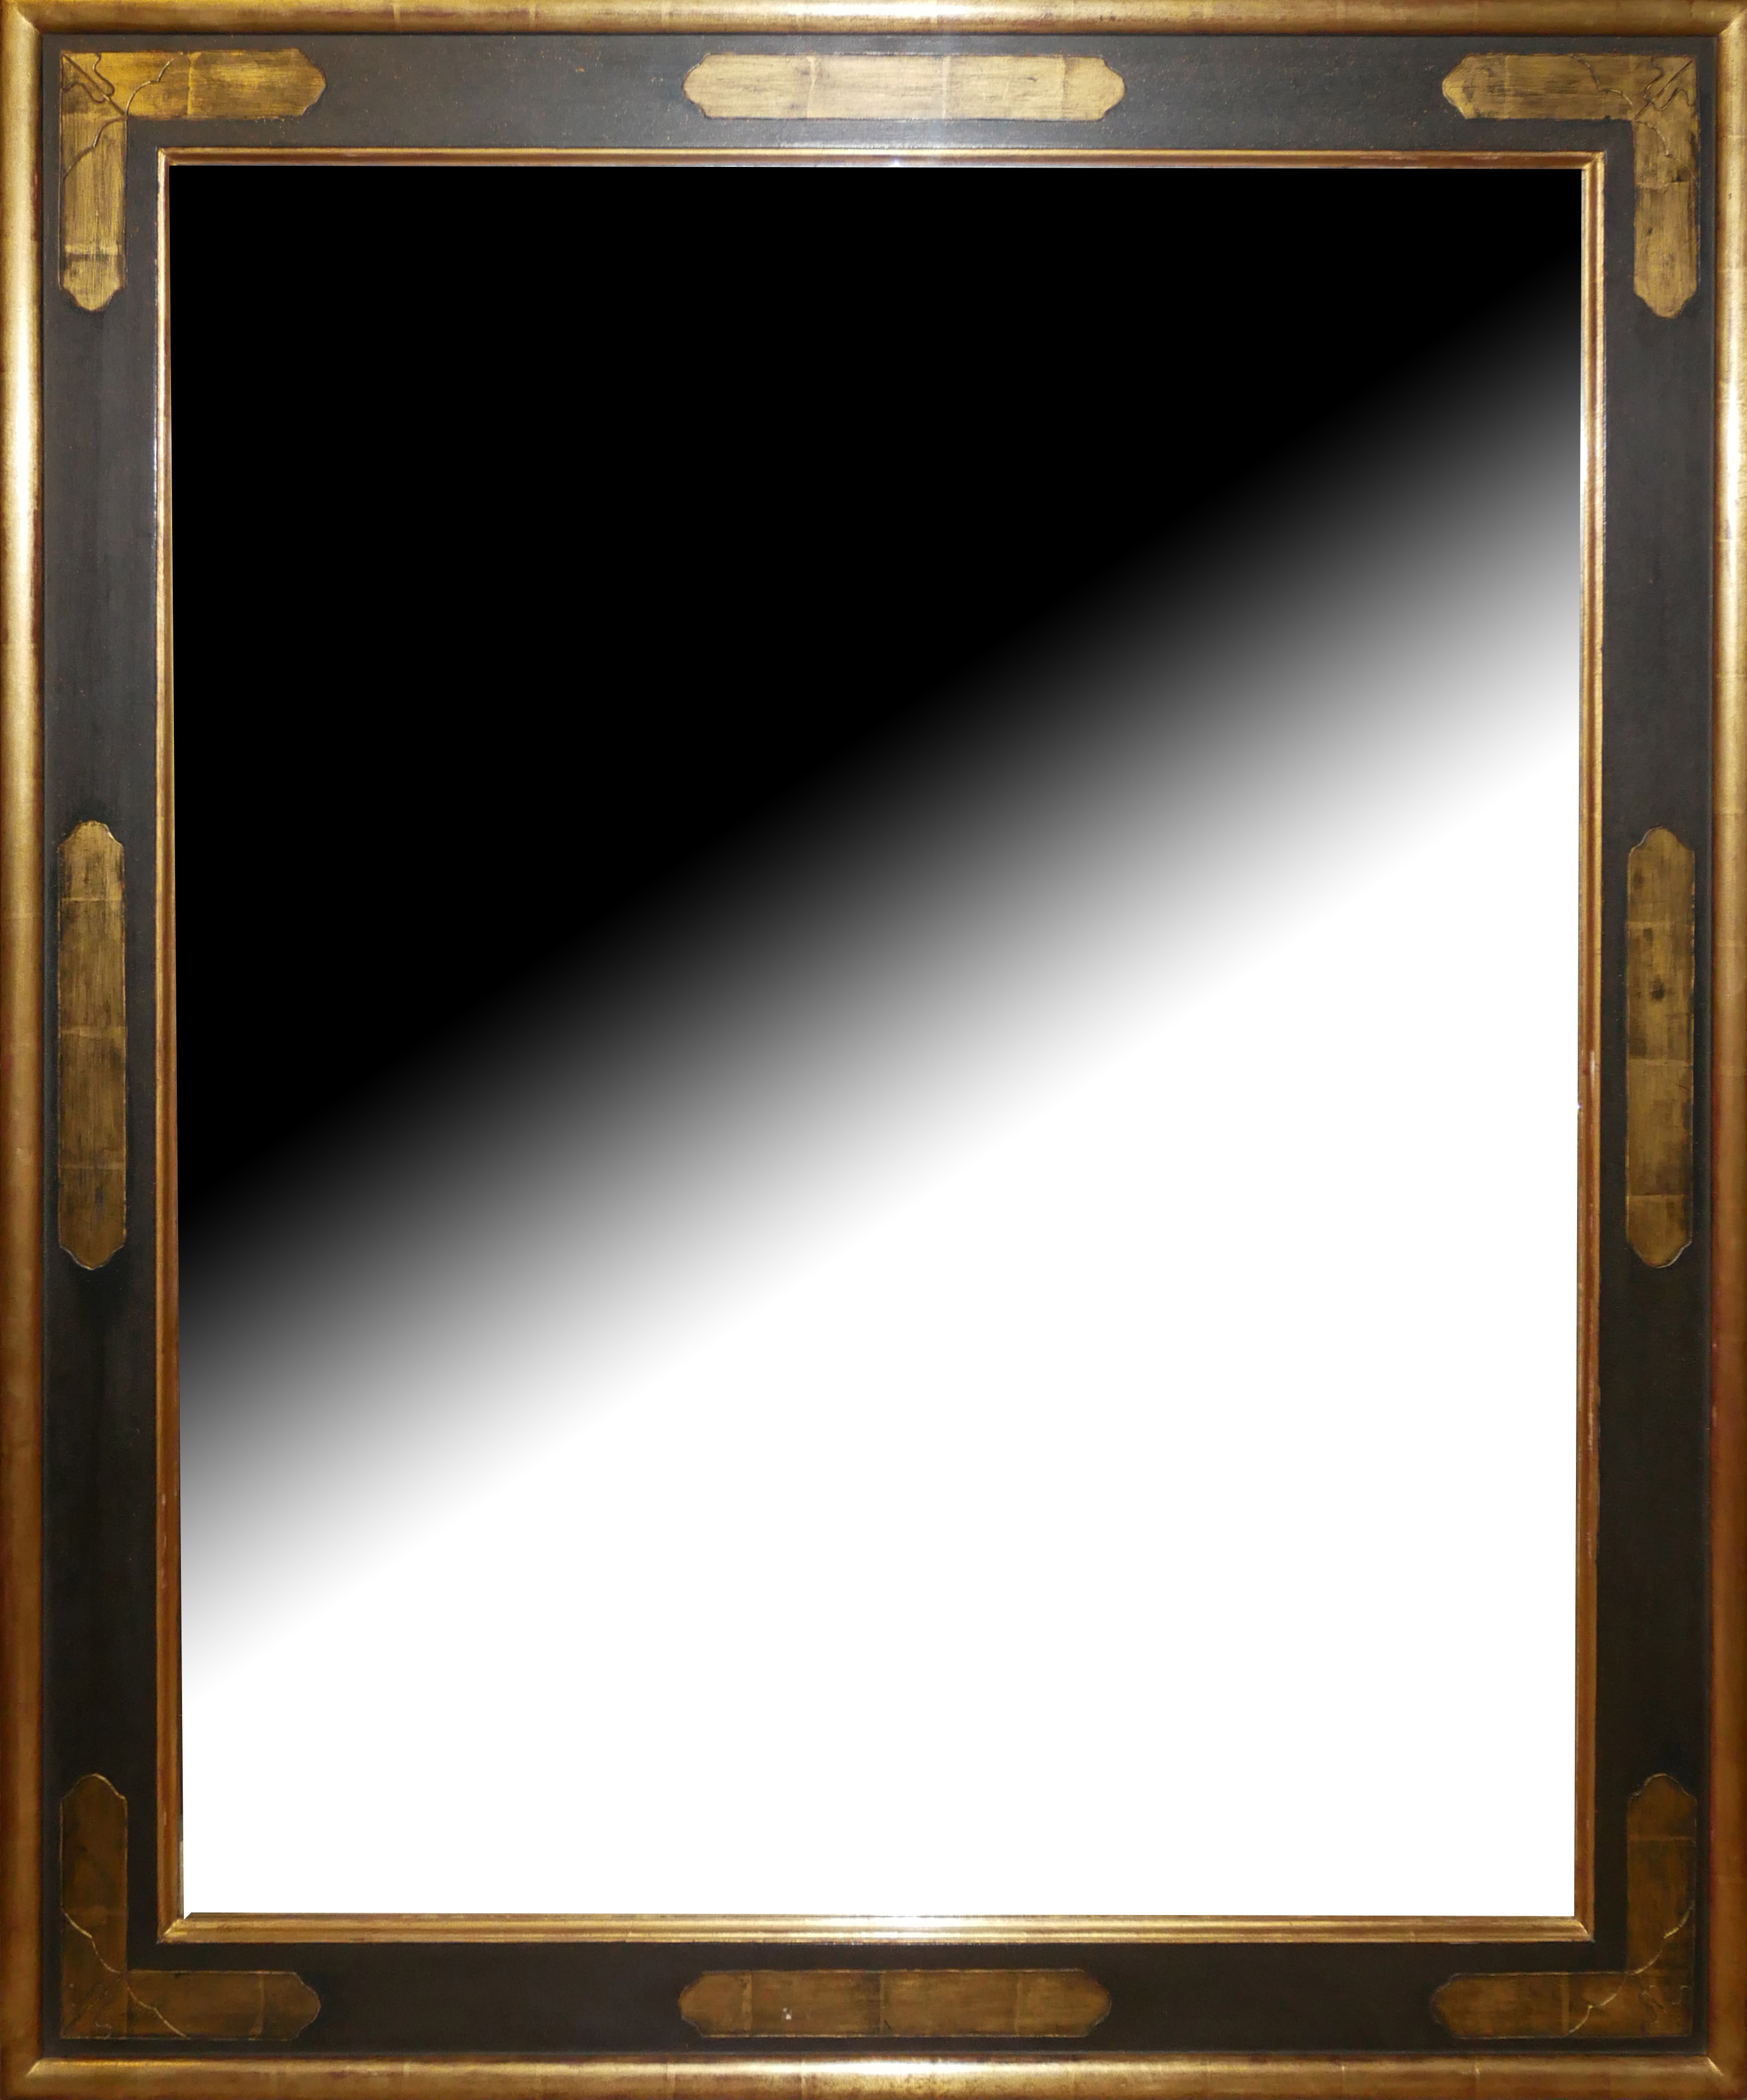 A BEVELLED PLATE OVER MANTLE MIRROR In a parcel gilt and brown frame. (103cm x 123cm) Condition: